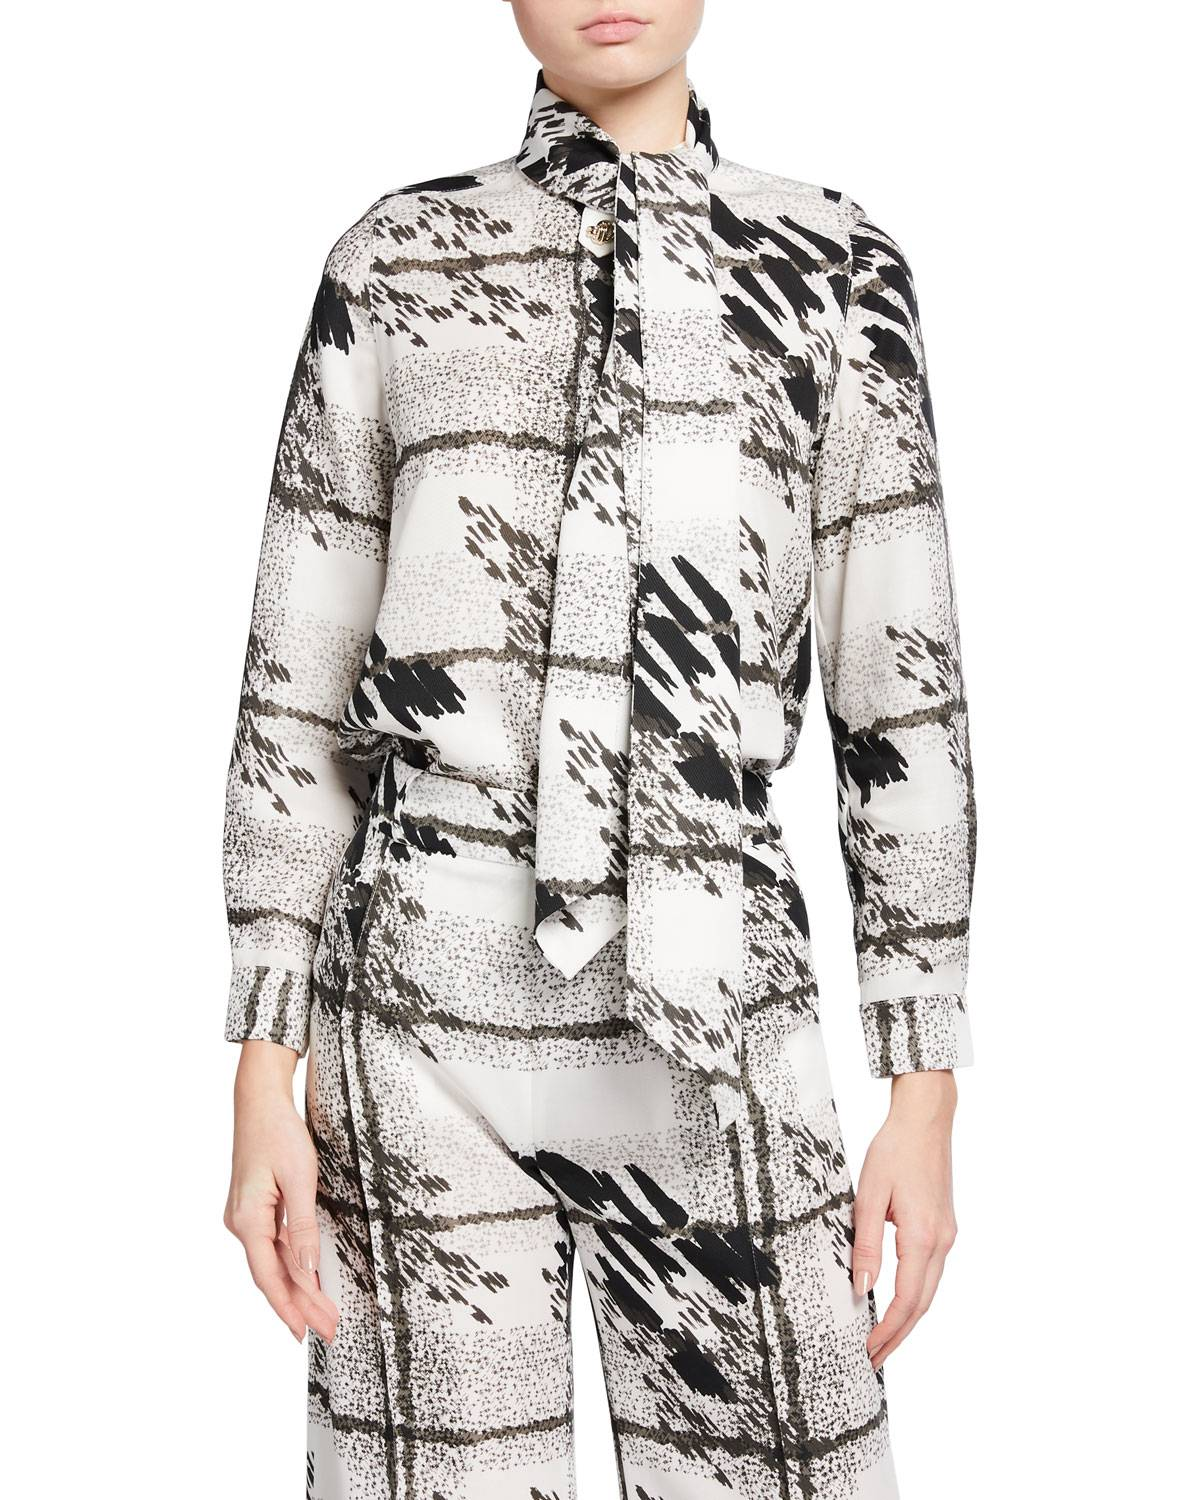 Pearl Printed Blouse with Neck Scarf - Size: 6 UK (2 US)